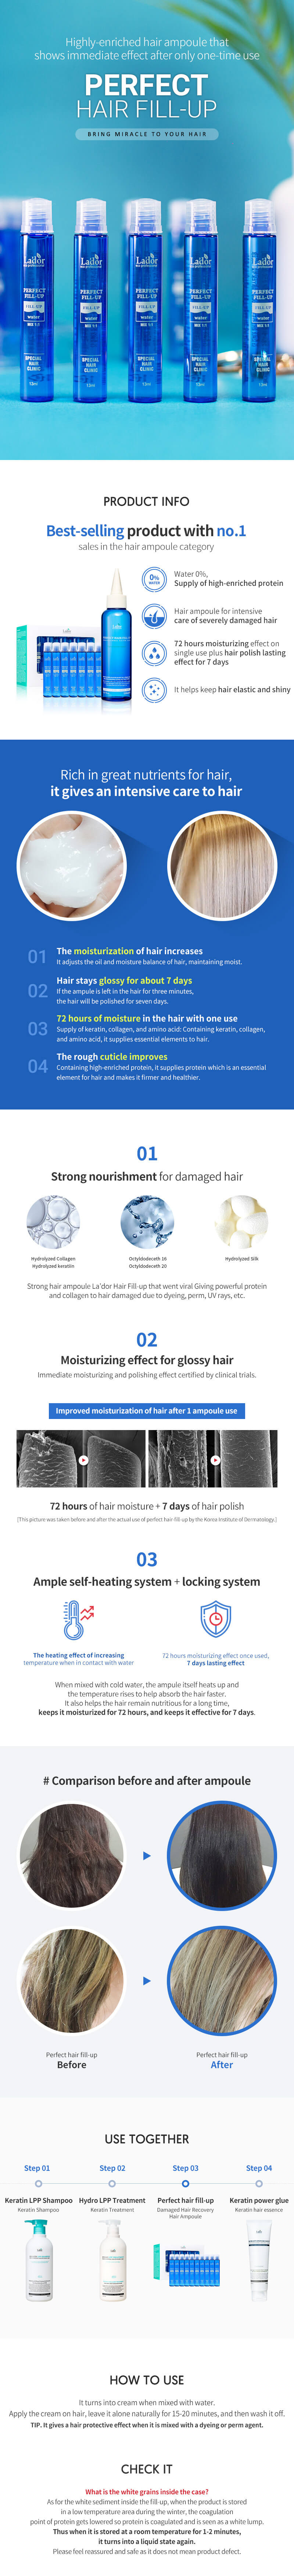 Lador Perfect Hair Fill-up Hair Ampoule 13ml x 20ea